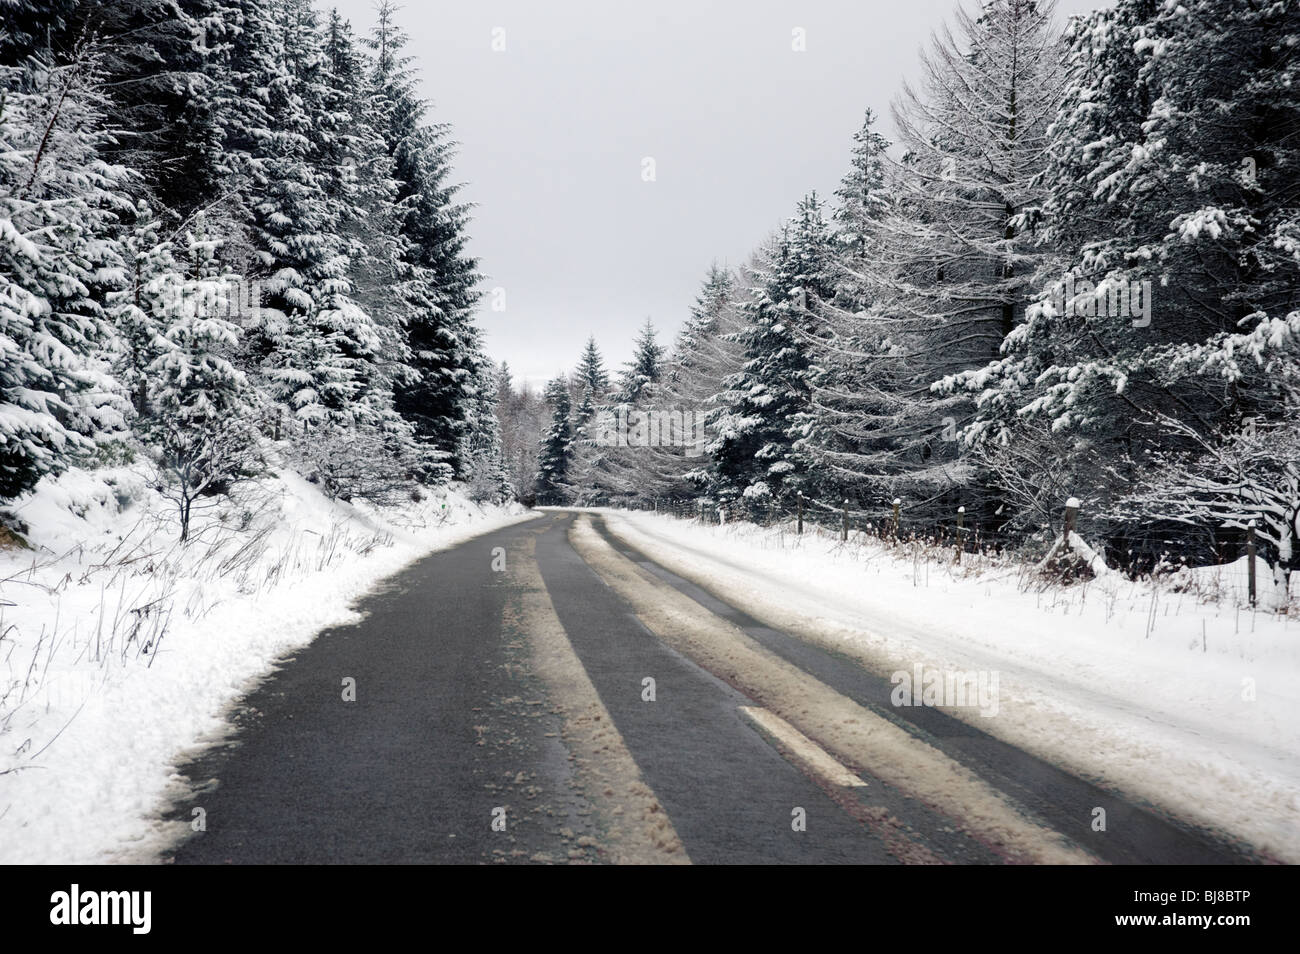 Snake Pass,A57,in winter snow,Derbyshire,Peak District,UK - Stock Image